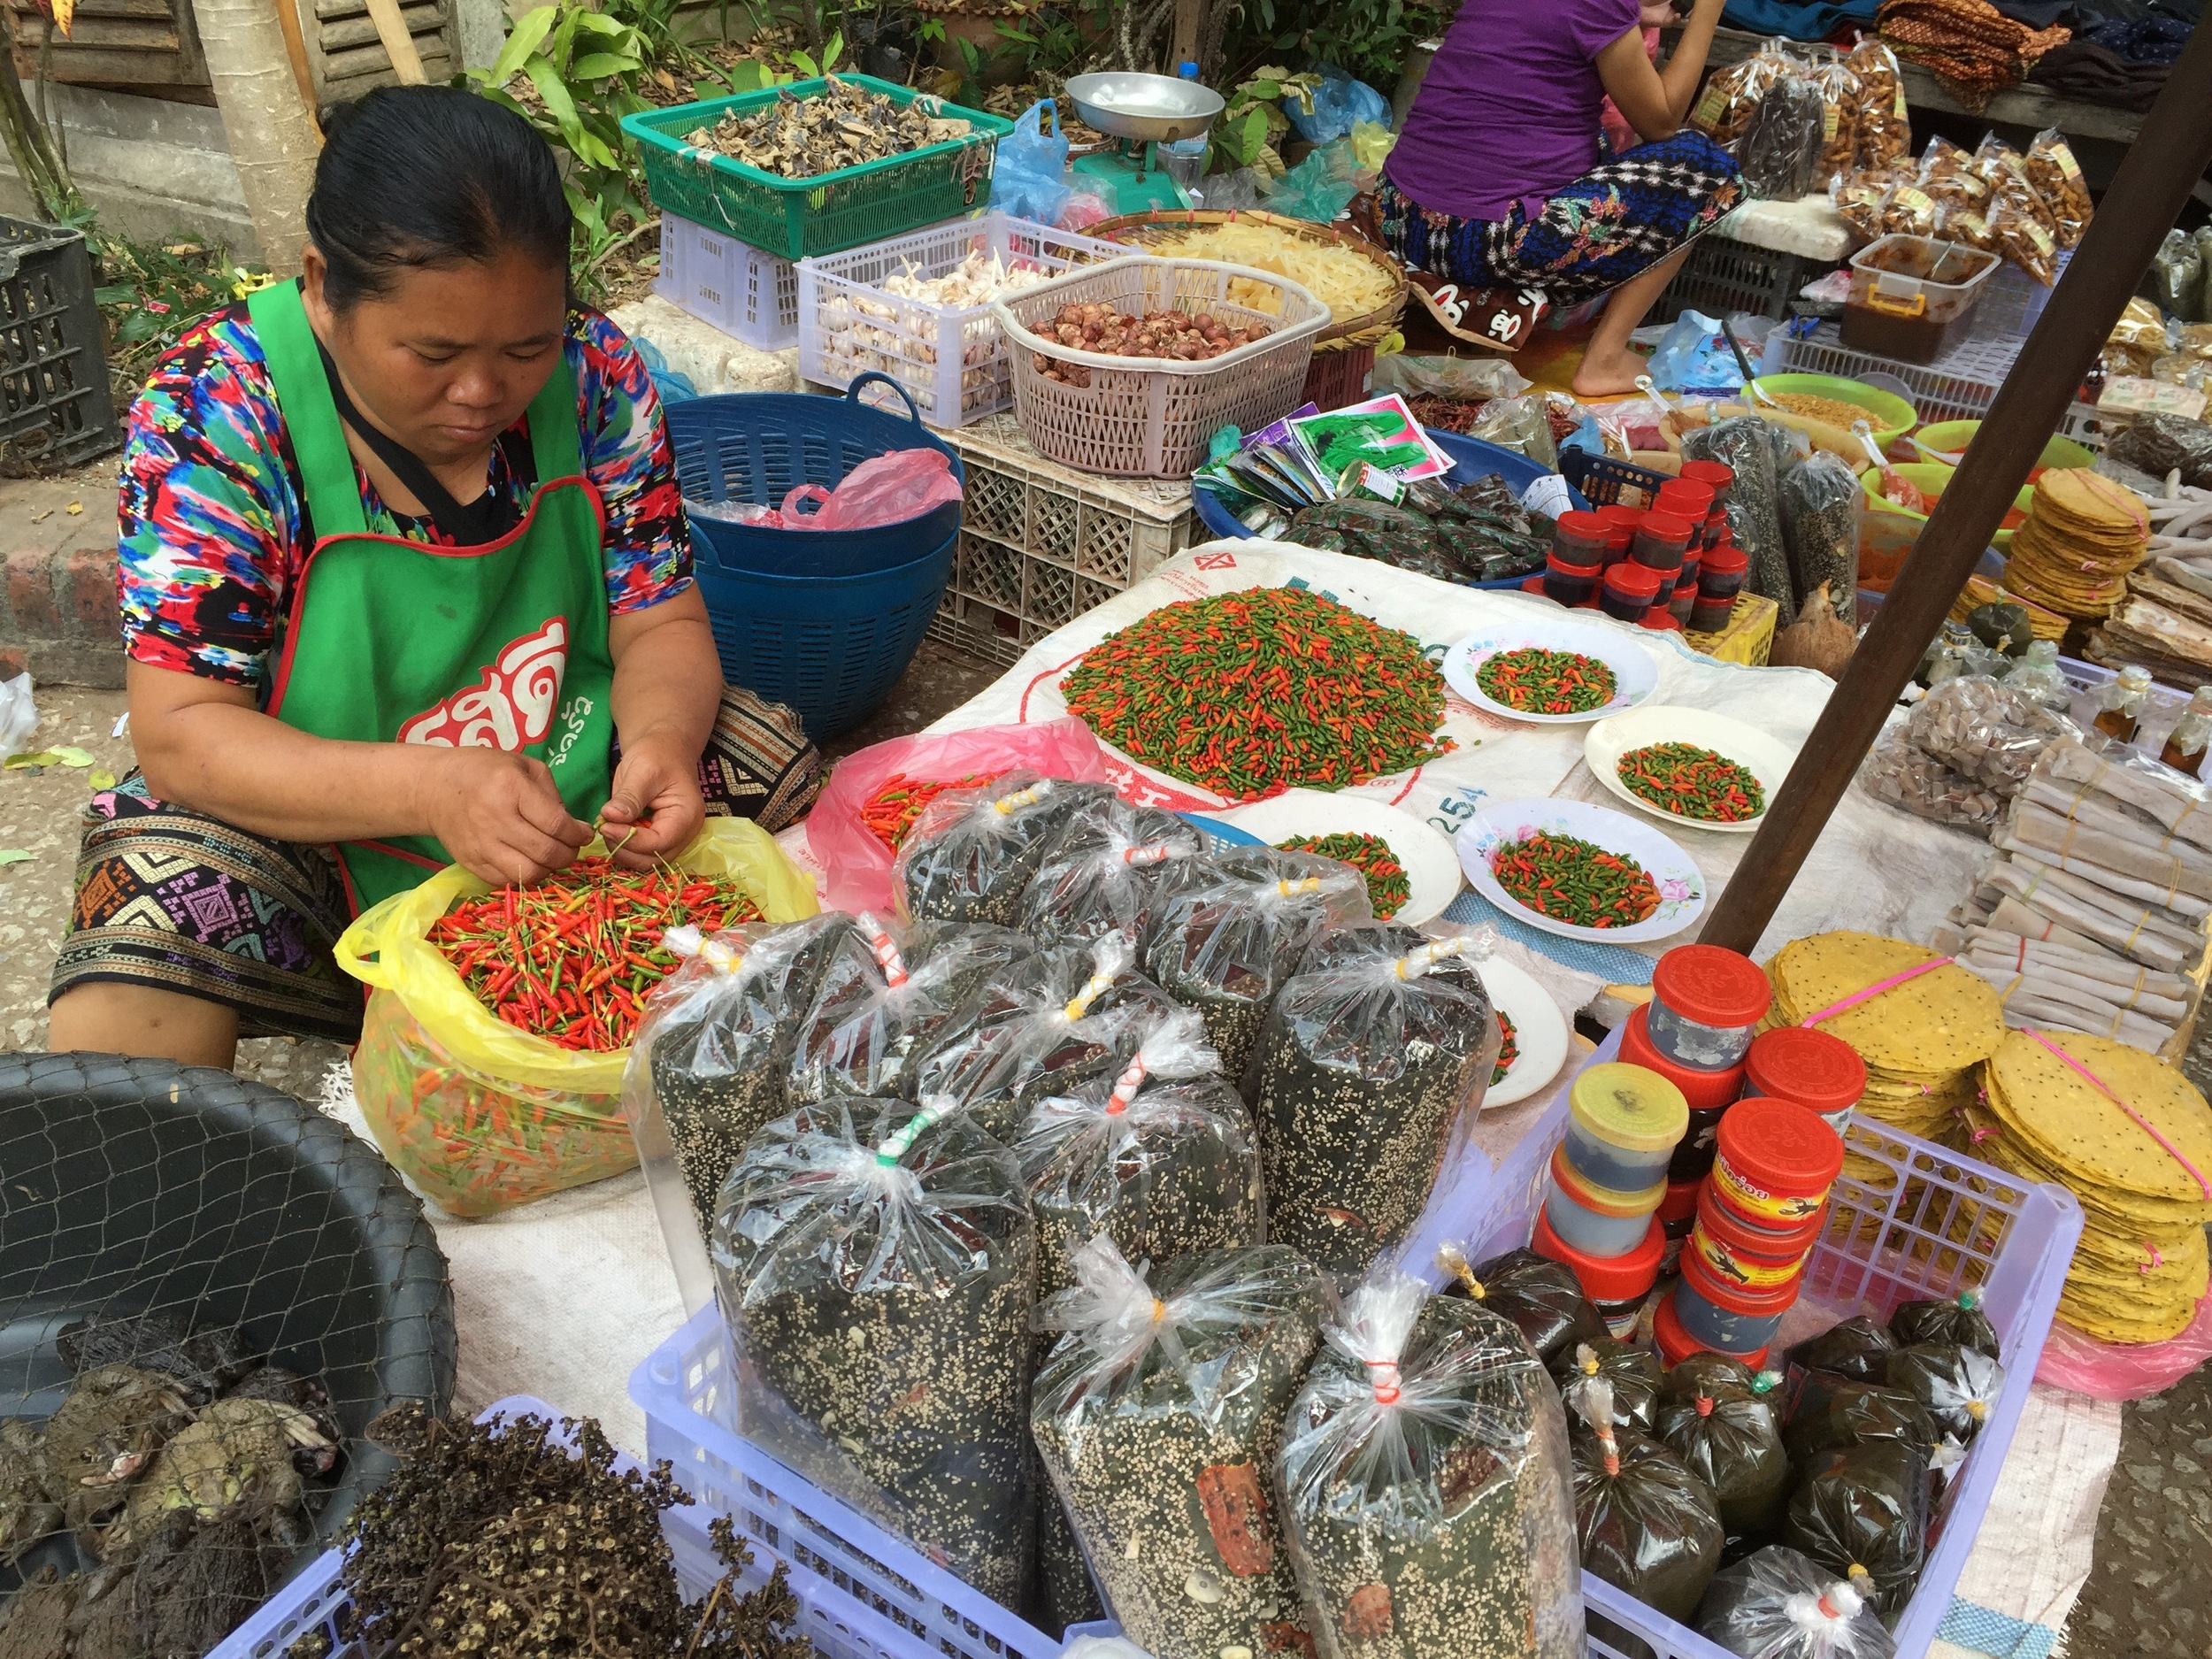 Colorful chilis and legumes are everywhere at the street market in Luang Prabang.